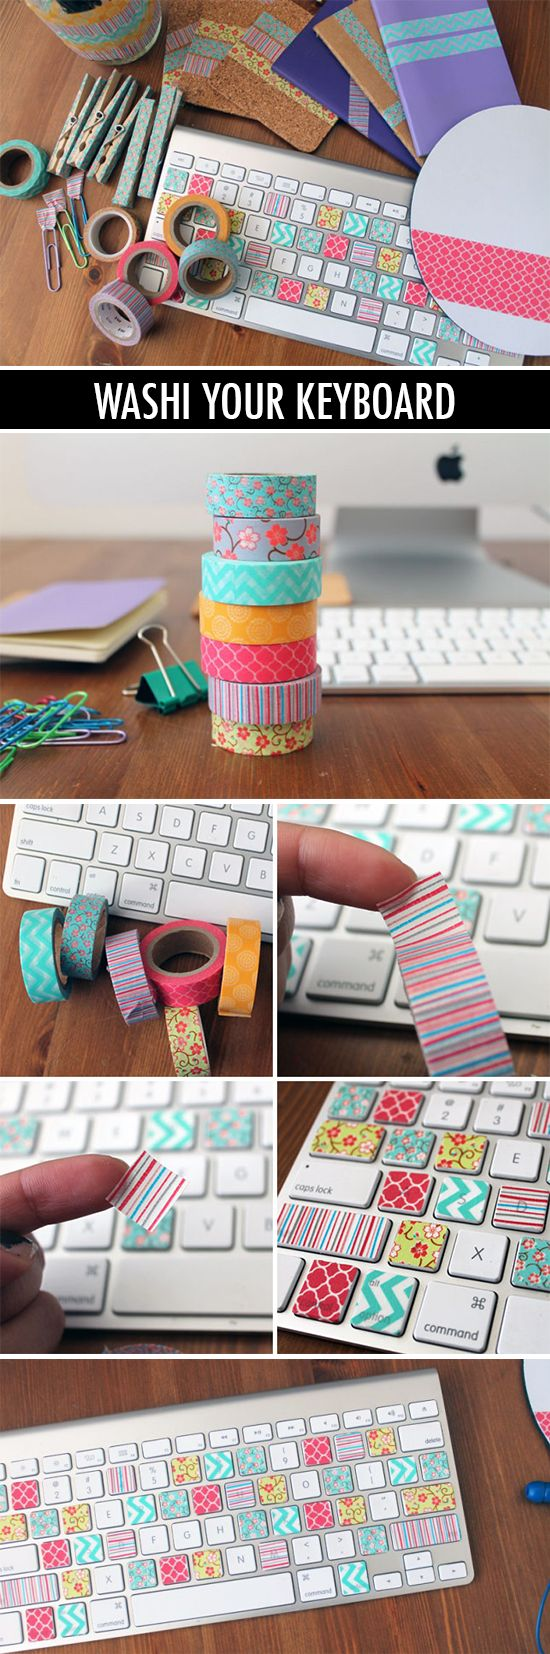 I would re-stamp letters on after but funky idea  Brighten up your keyboard with washi tap!